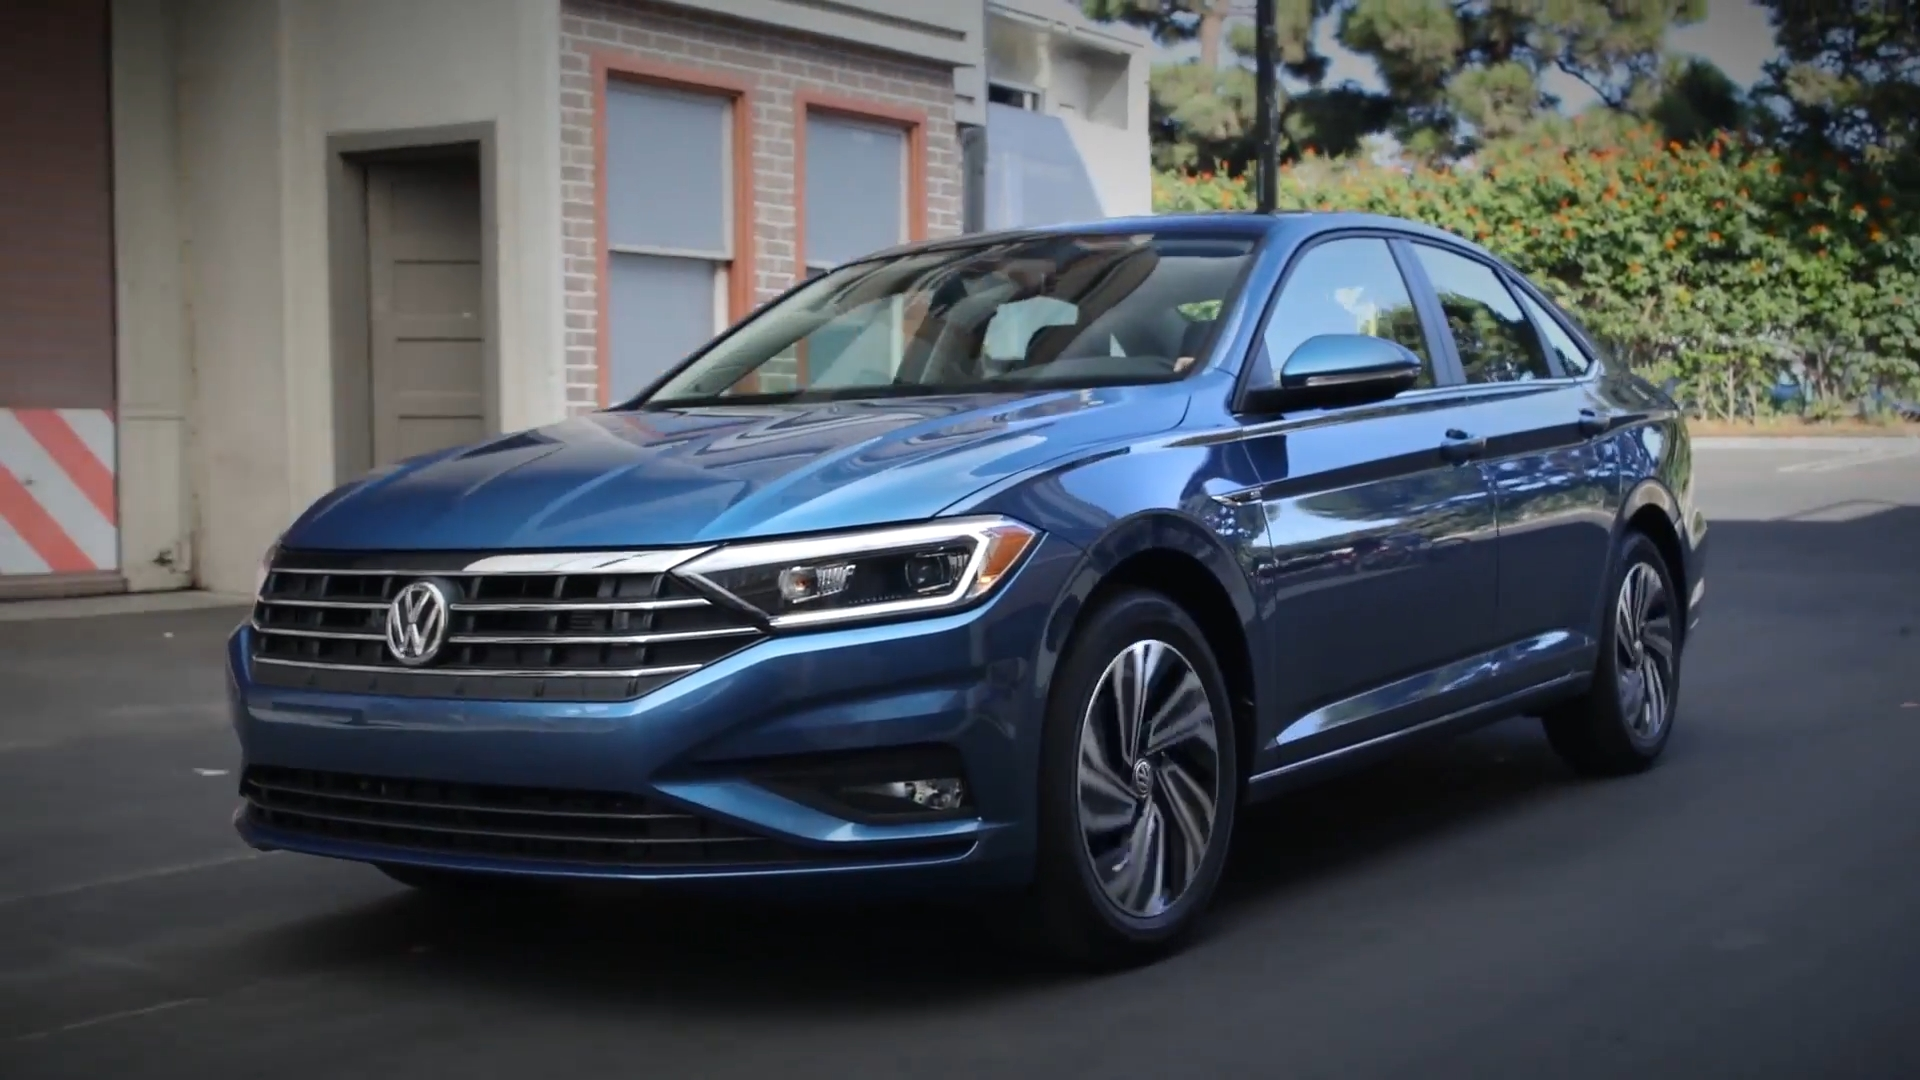 2019 Volkswagen Jetta Driving Video